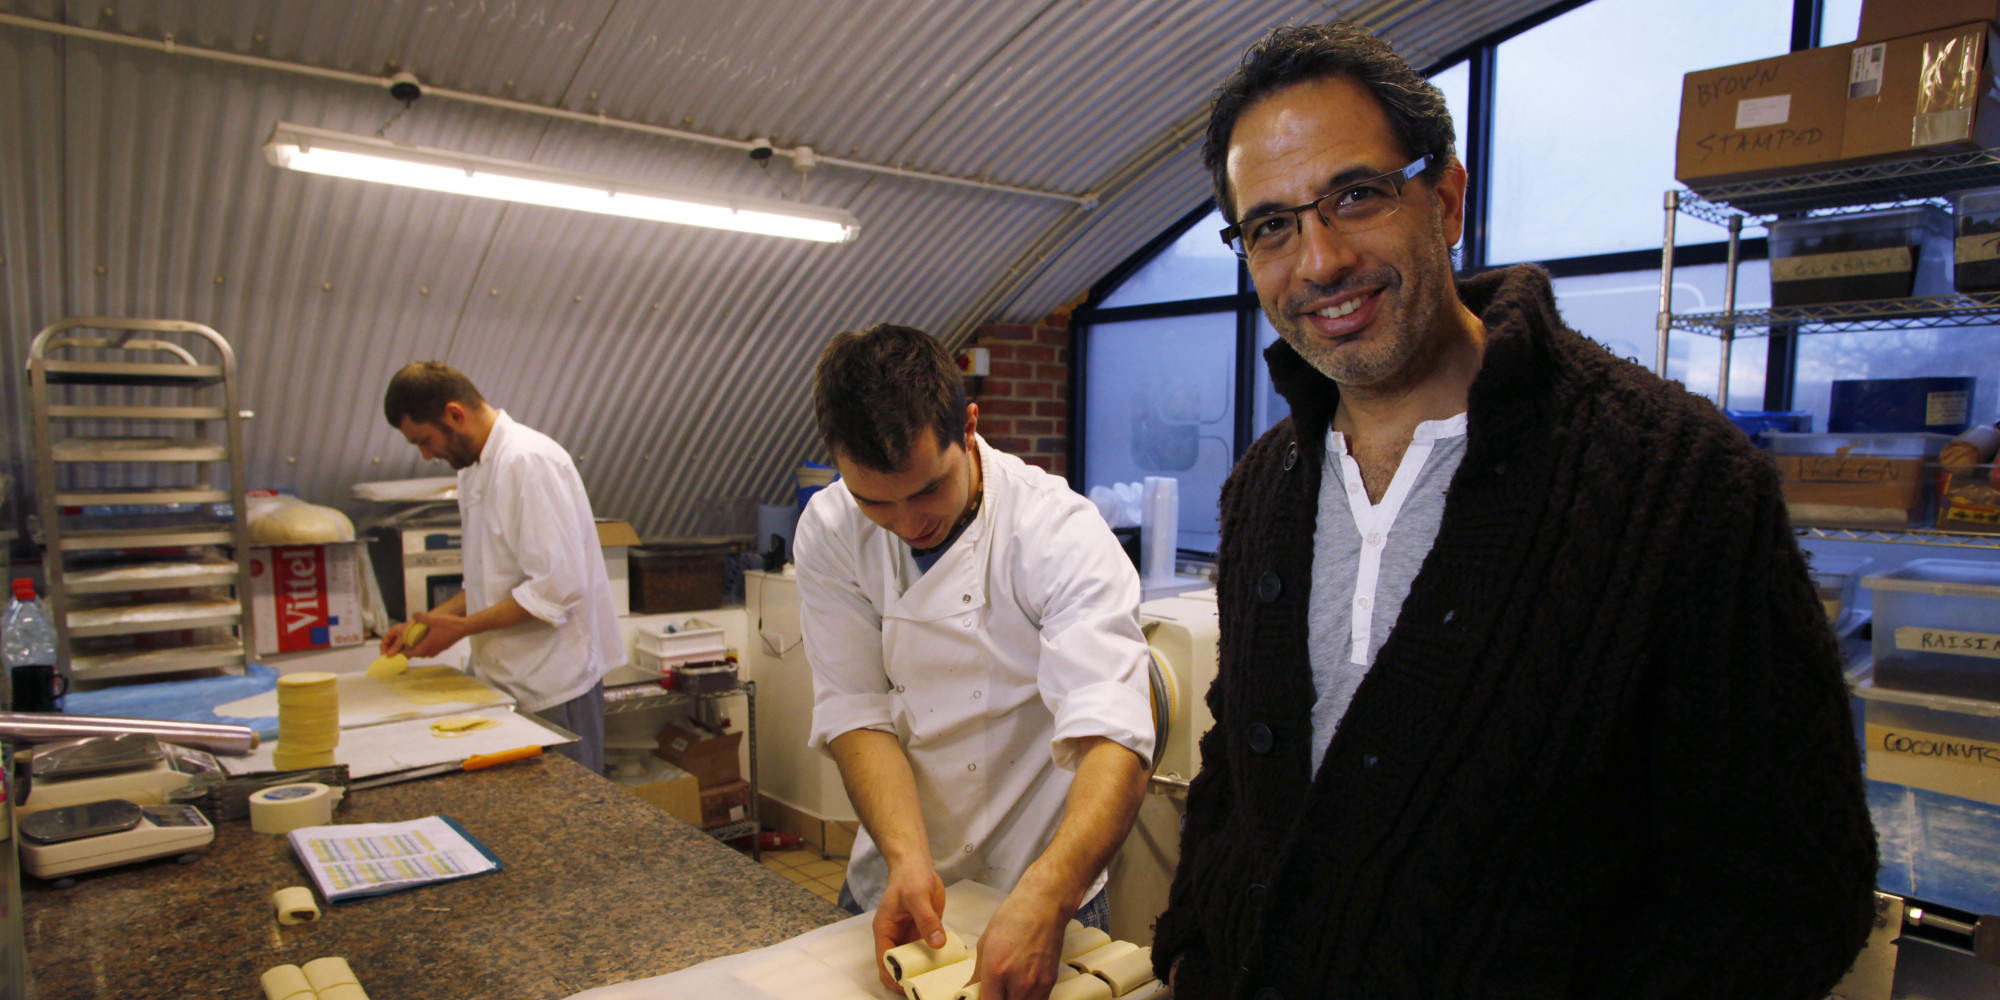 Ottolenghi: Yotam Ottolenghi On Middle Eastern Food, Downtime And His